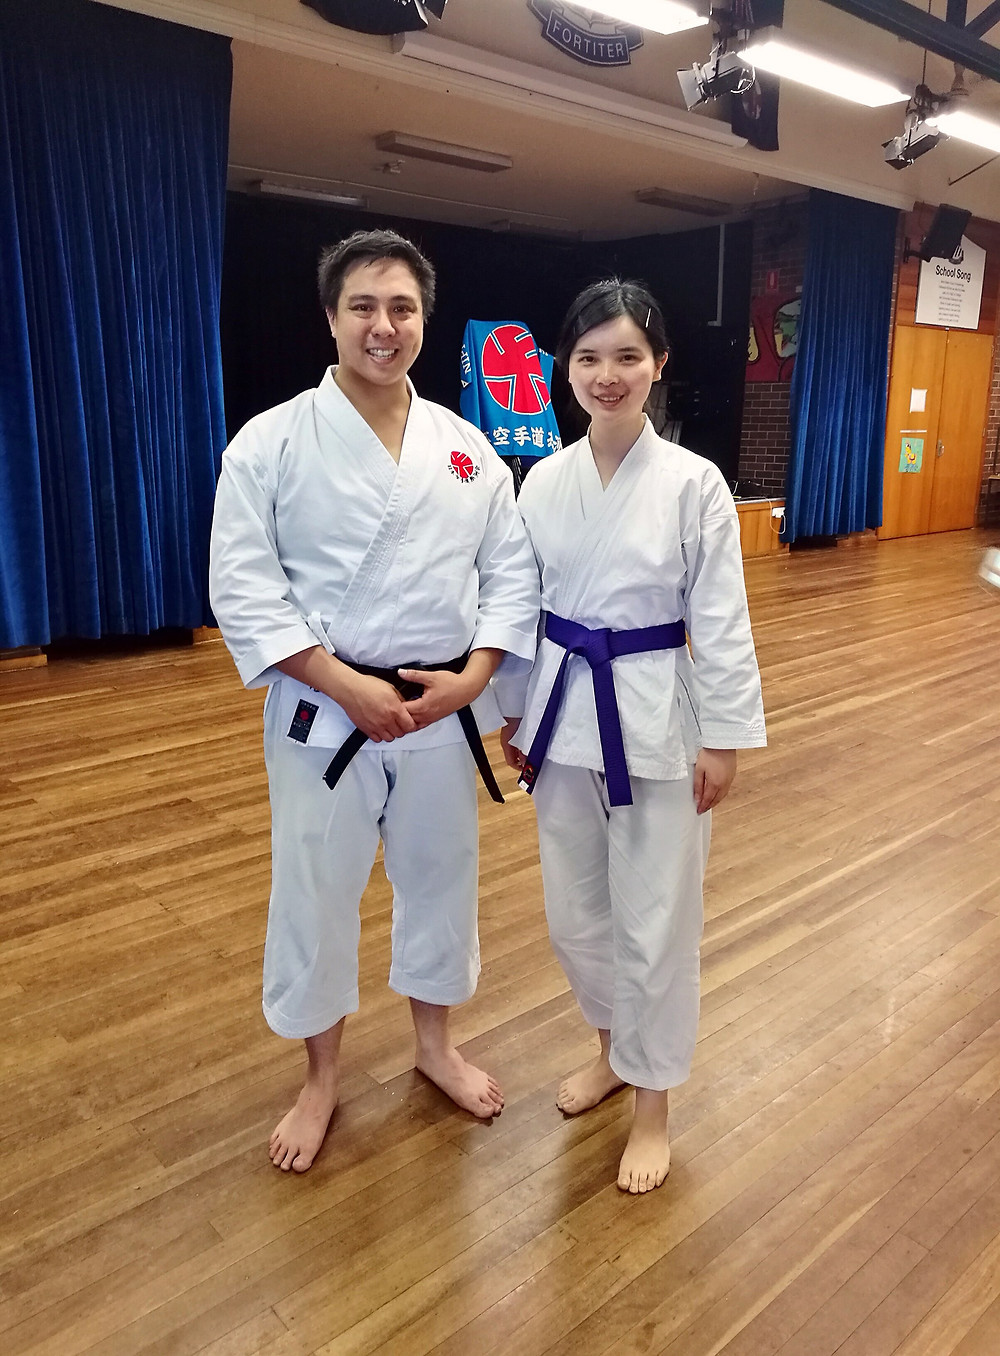 Chief Instructor of Itosu-kai Australia, Mr. Howard Leong